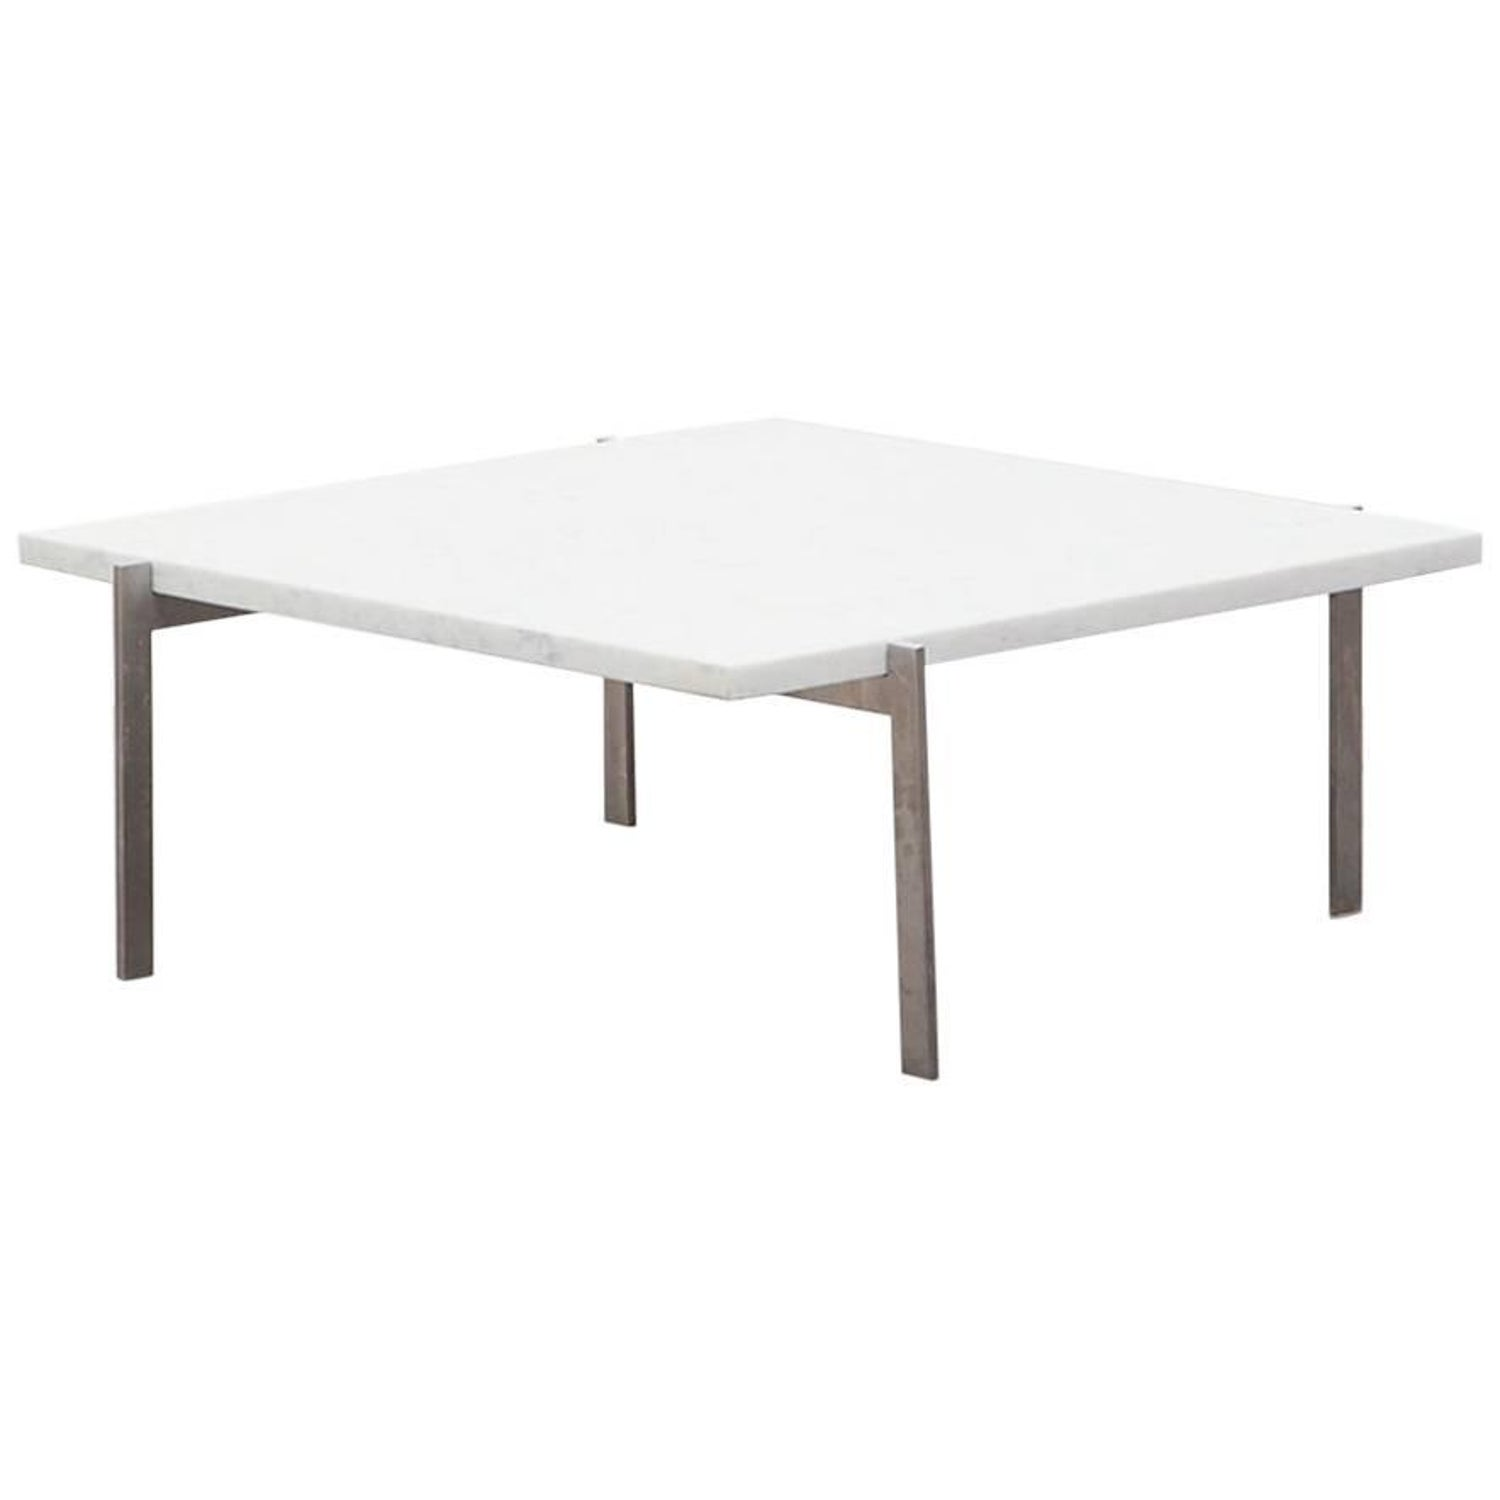 poul kjaerholm coffee table for sale at 1stdibs